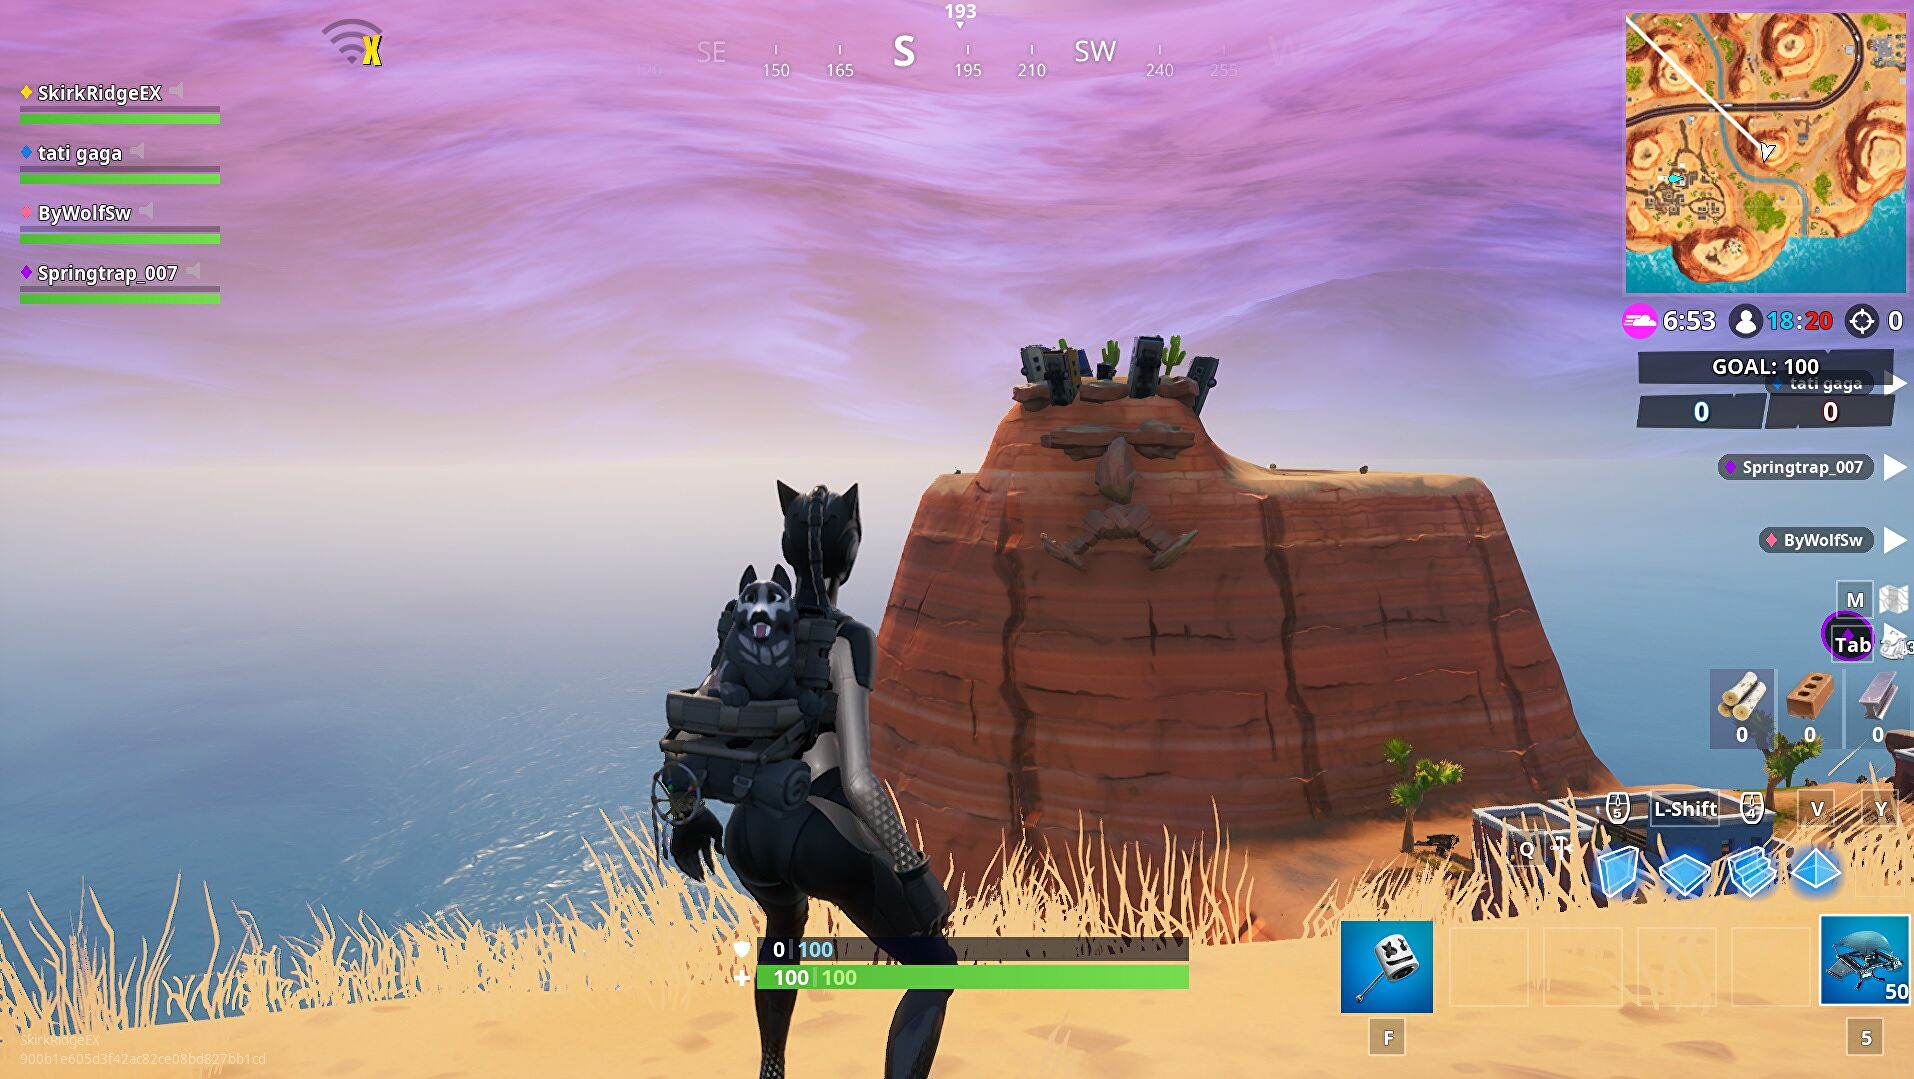 Fortnite Faces In The Snow Fortnite Giant Face Locations Find The Desert Jungle And Snow Giant Faces Rock Paper Shotgun